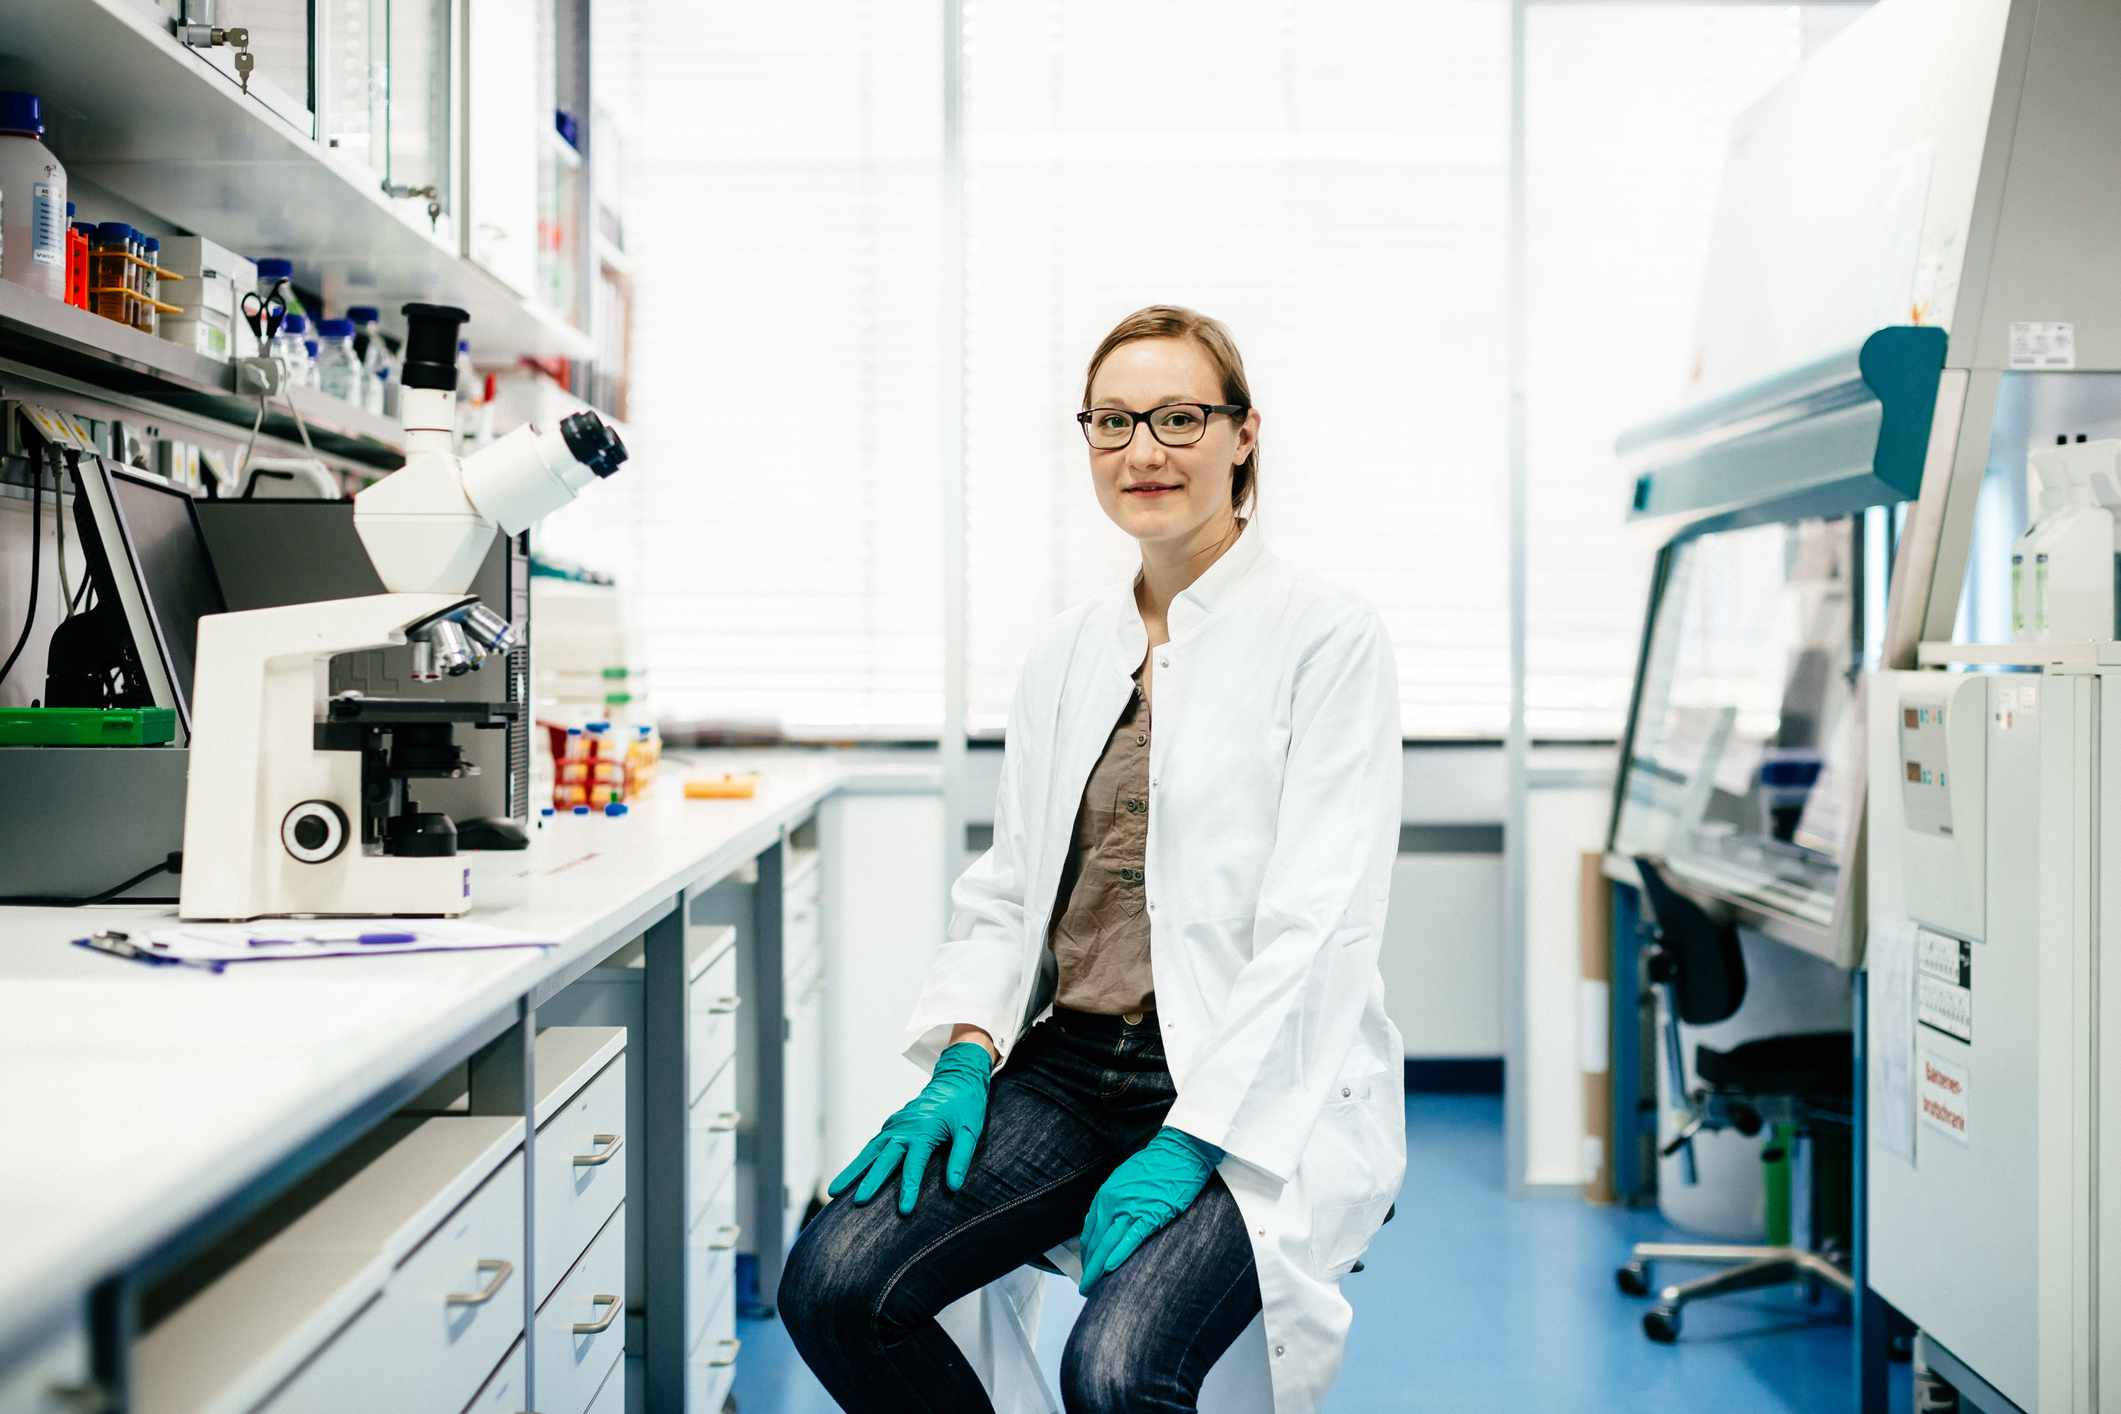 Seated woman wearing lab coat